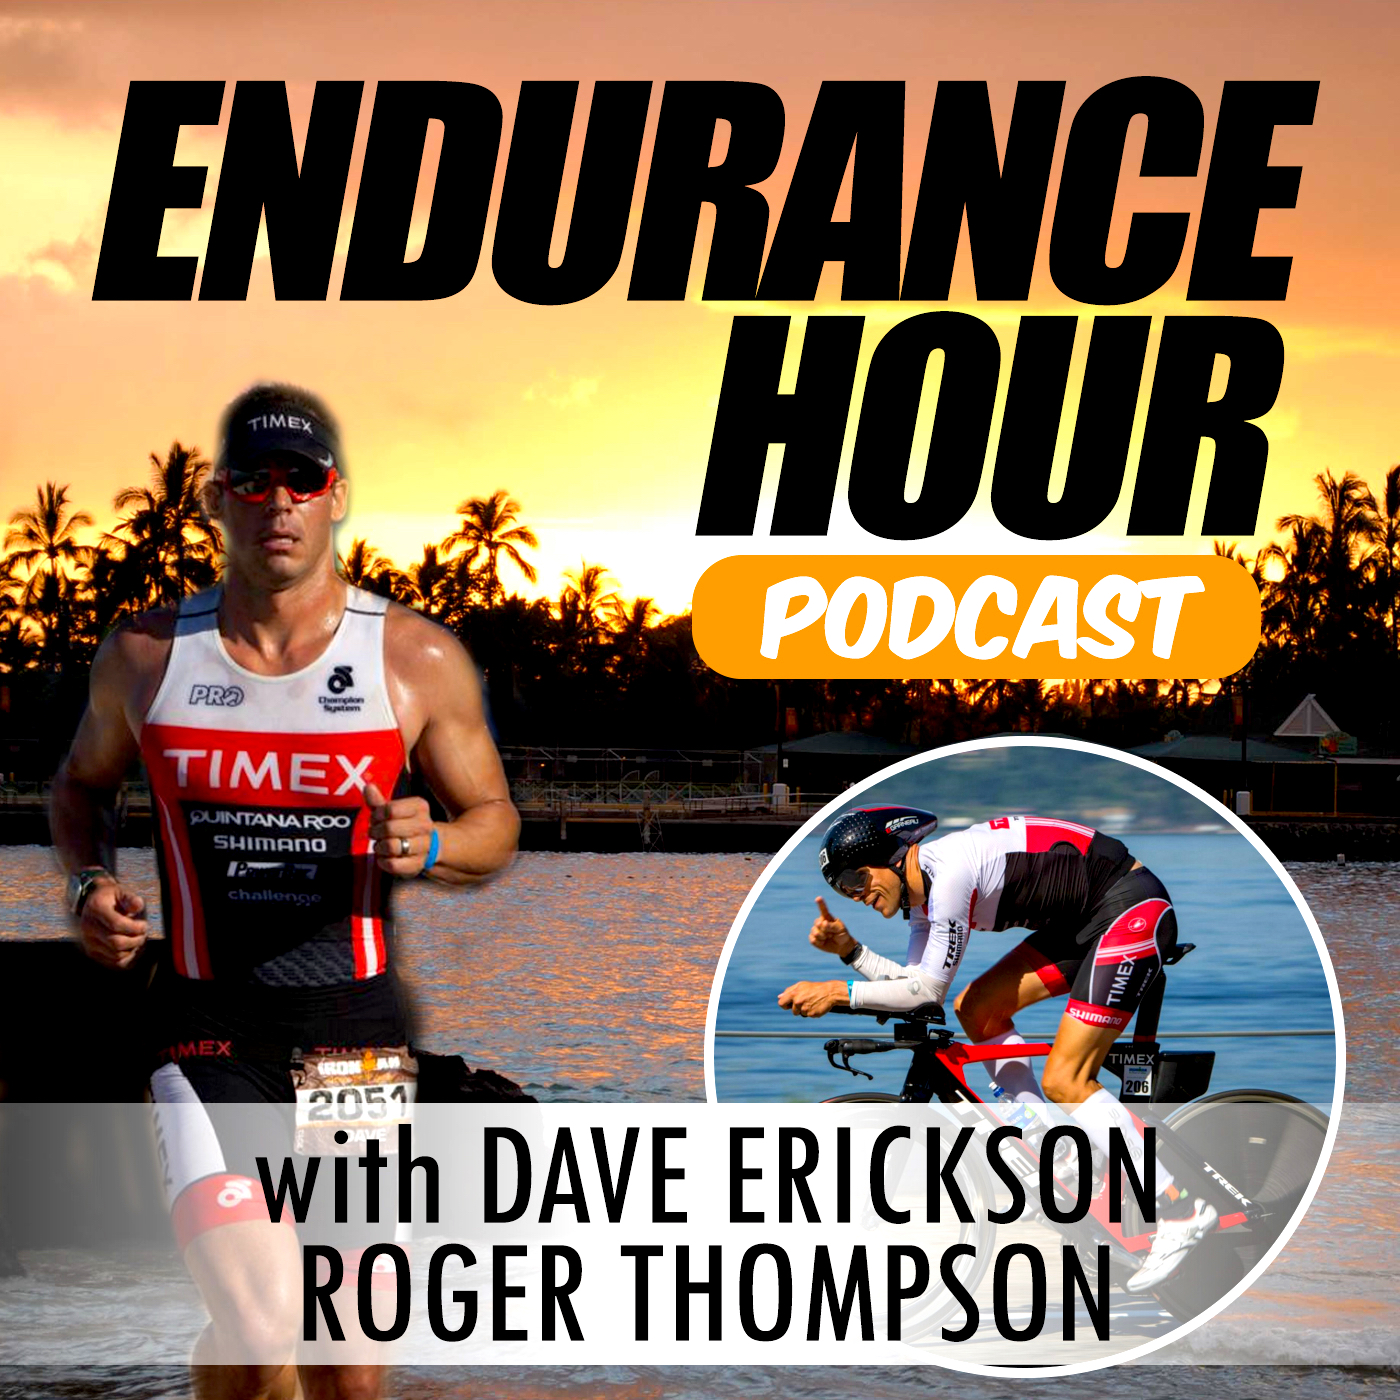 Endurance Hour: Inside the World of Endurance Sports and Triathlon with Dave Erickson and Roger Thompson